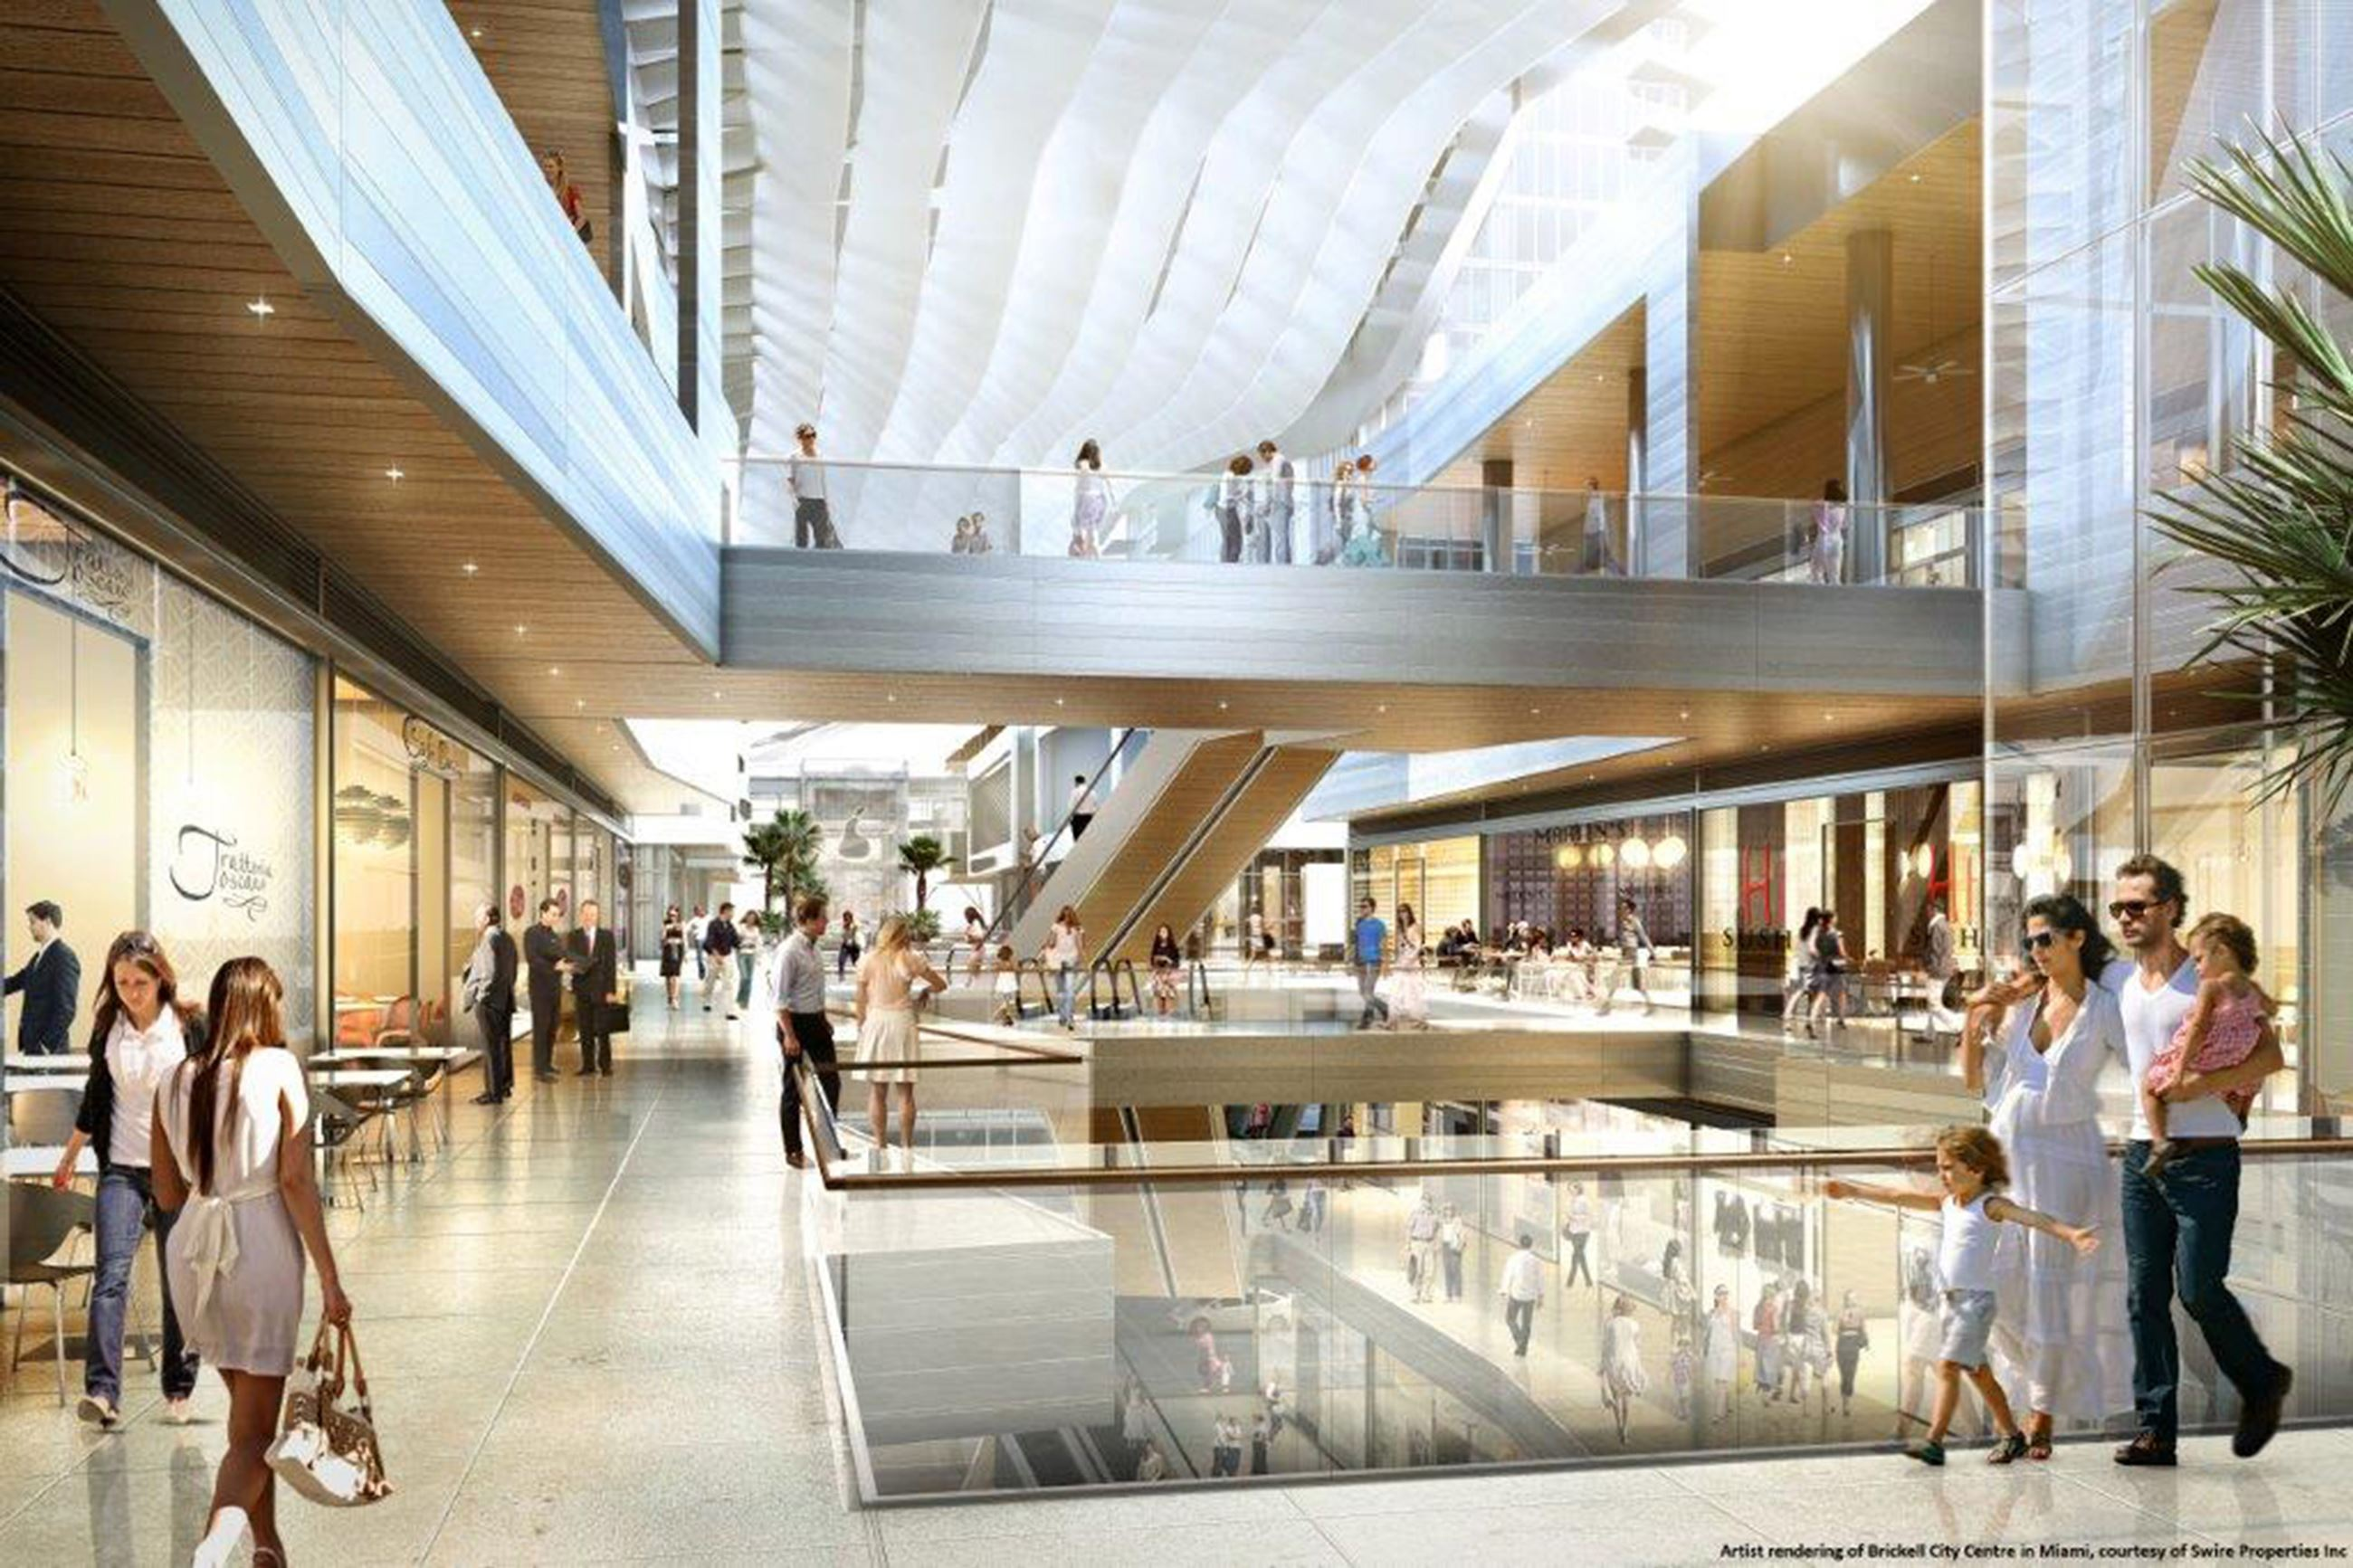 climate ribbon' will cool shoppers at miami-area shopping center